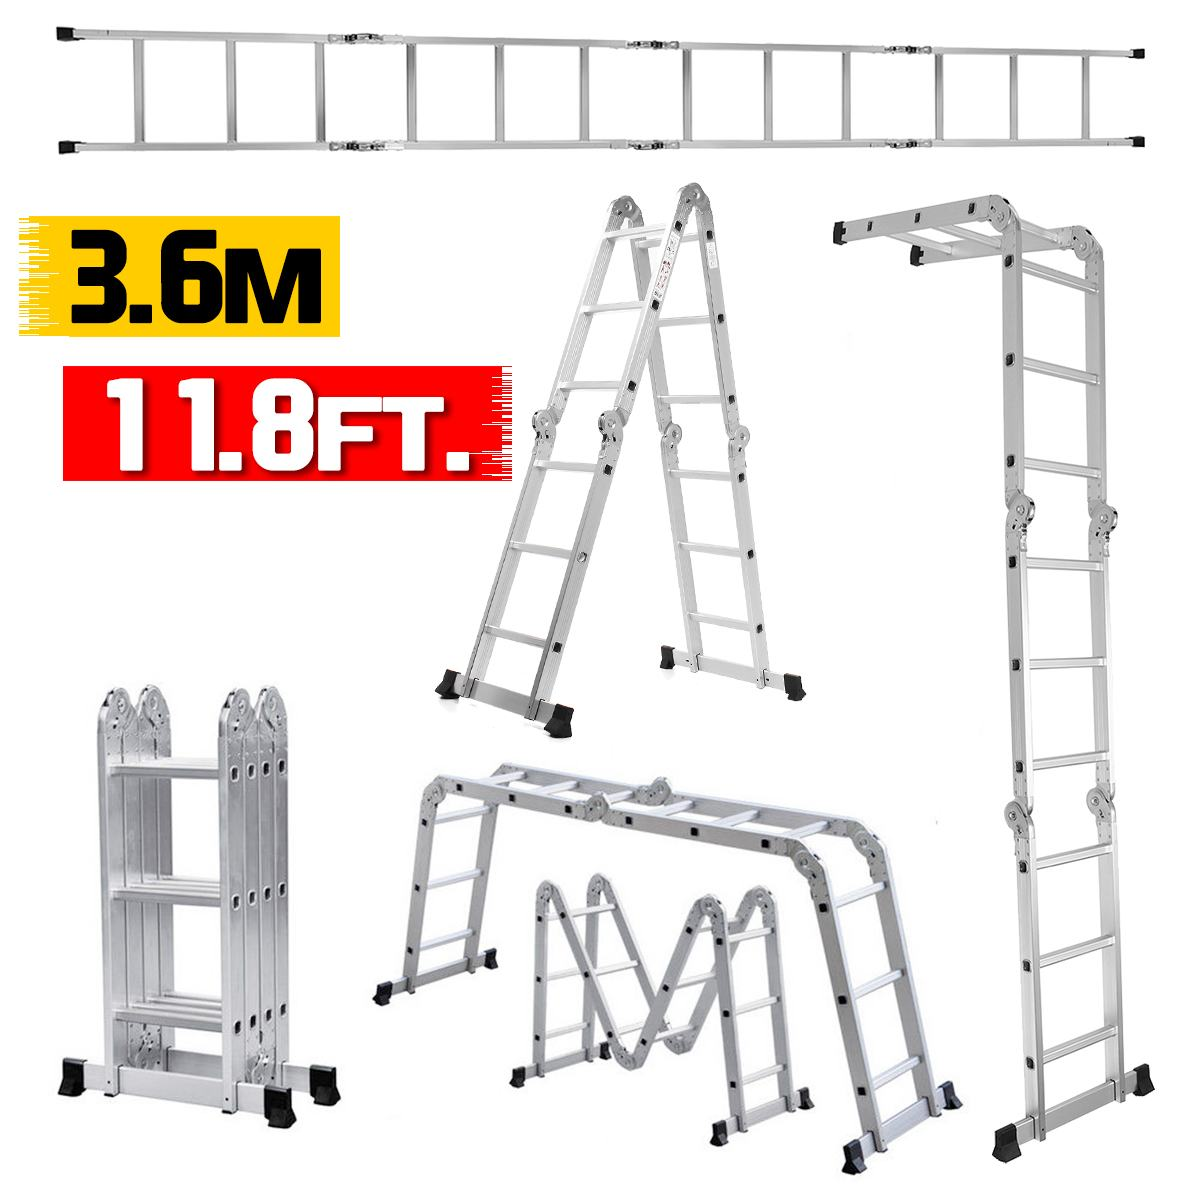 3.6m 12.5Ft Telescopic Ladder Folding Ladder Aluminum Extension Tall Ladder Multifunctional Single Extension Ladder Tool